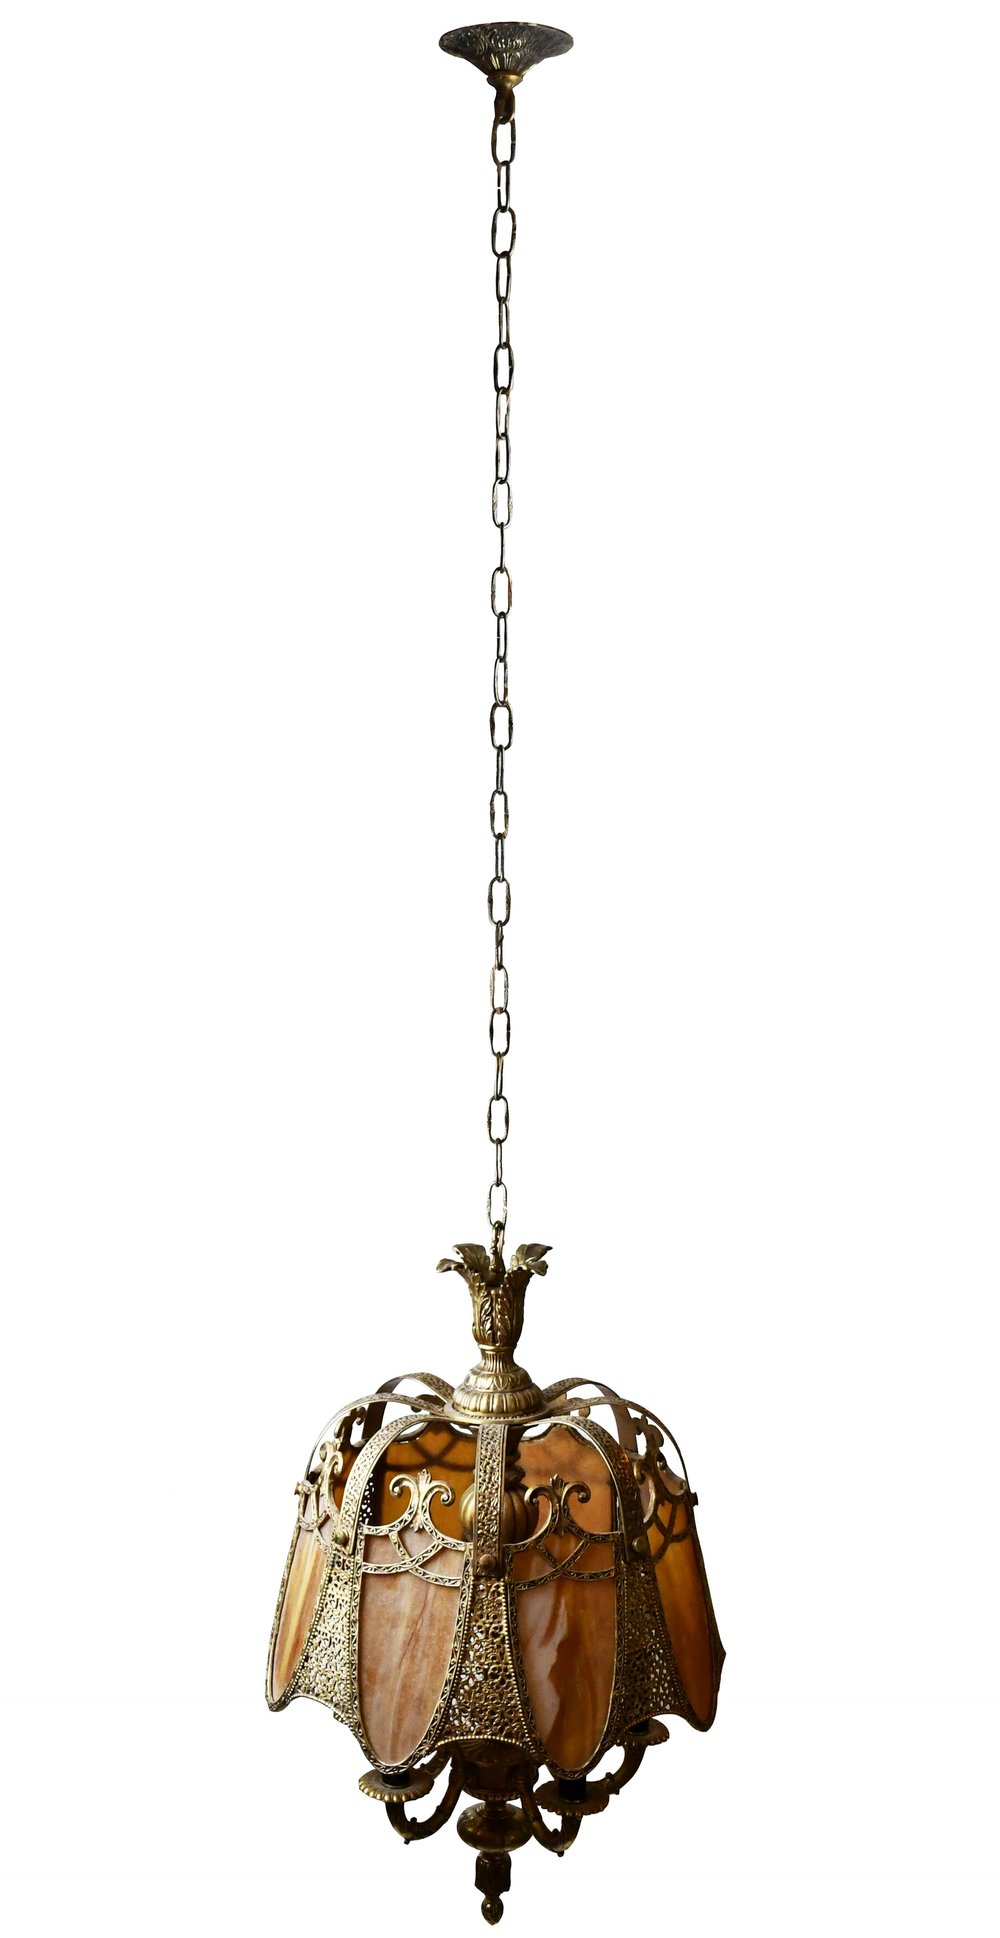 47331-brass-pendant-with-filagree-full.jpg